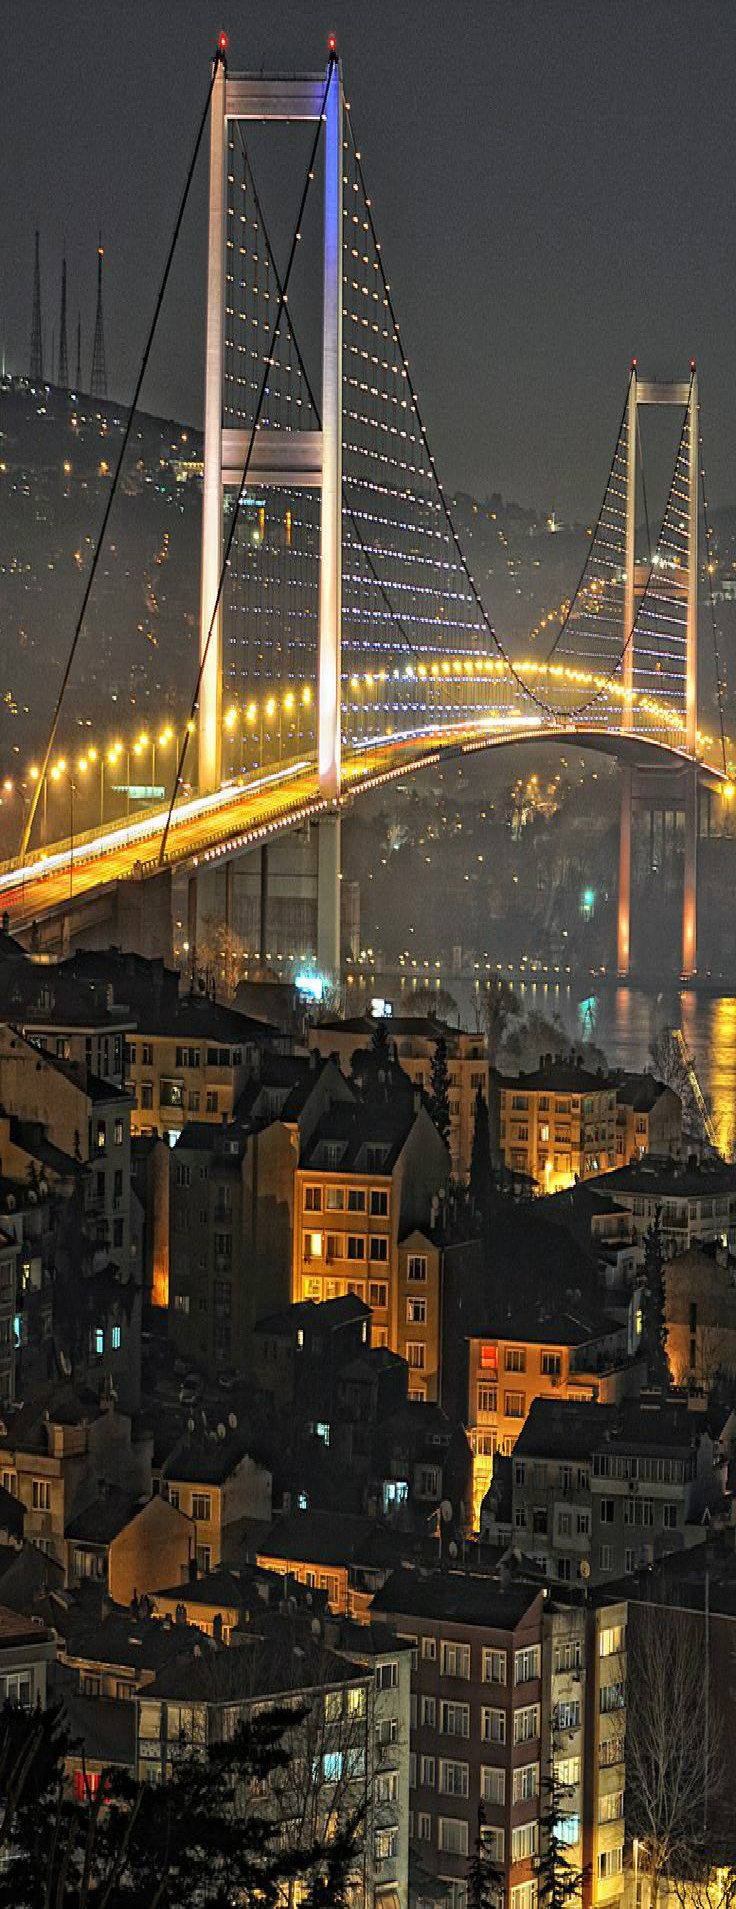 Bosphorus Bridge, Istanbul, Turkey http://viajerosdelmisterio.com/